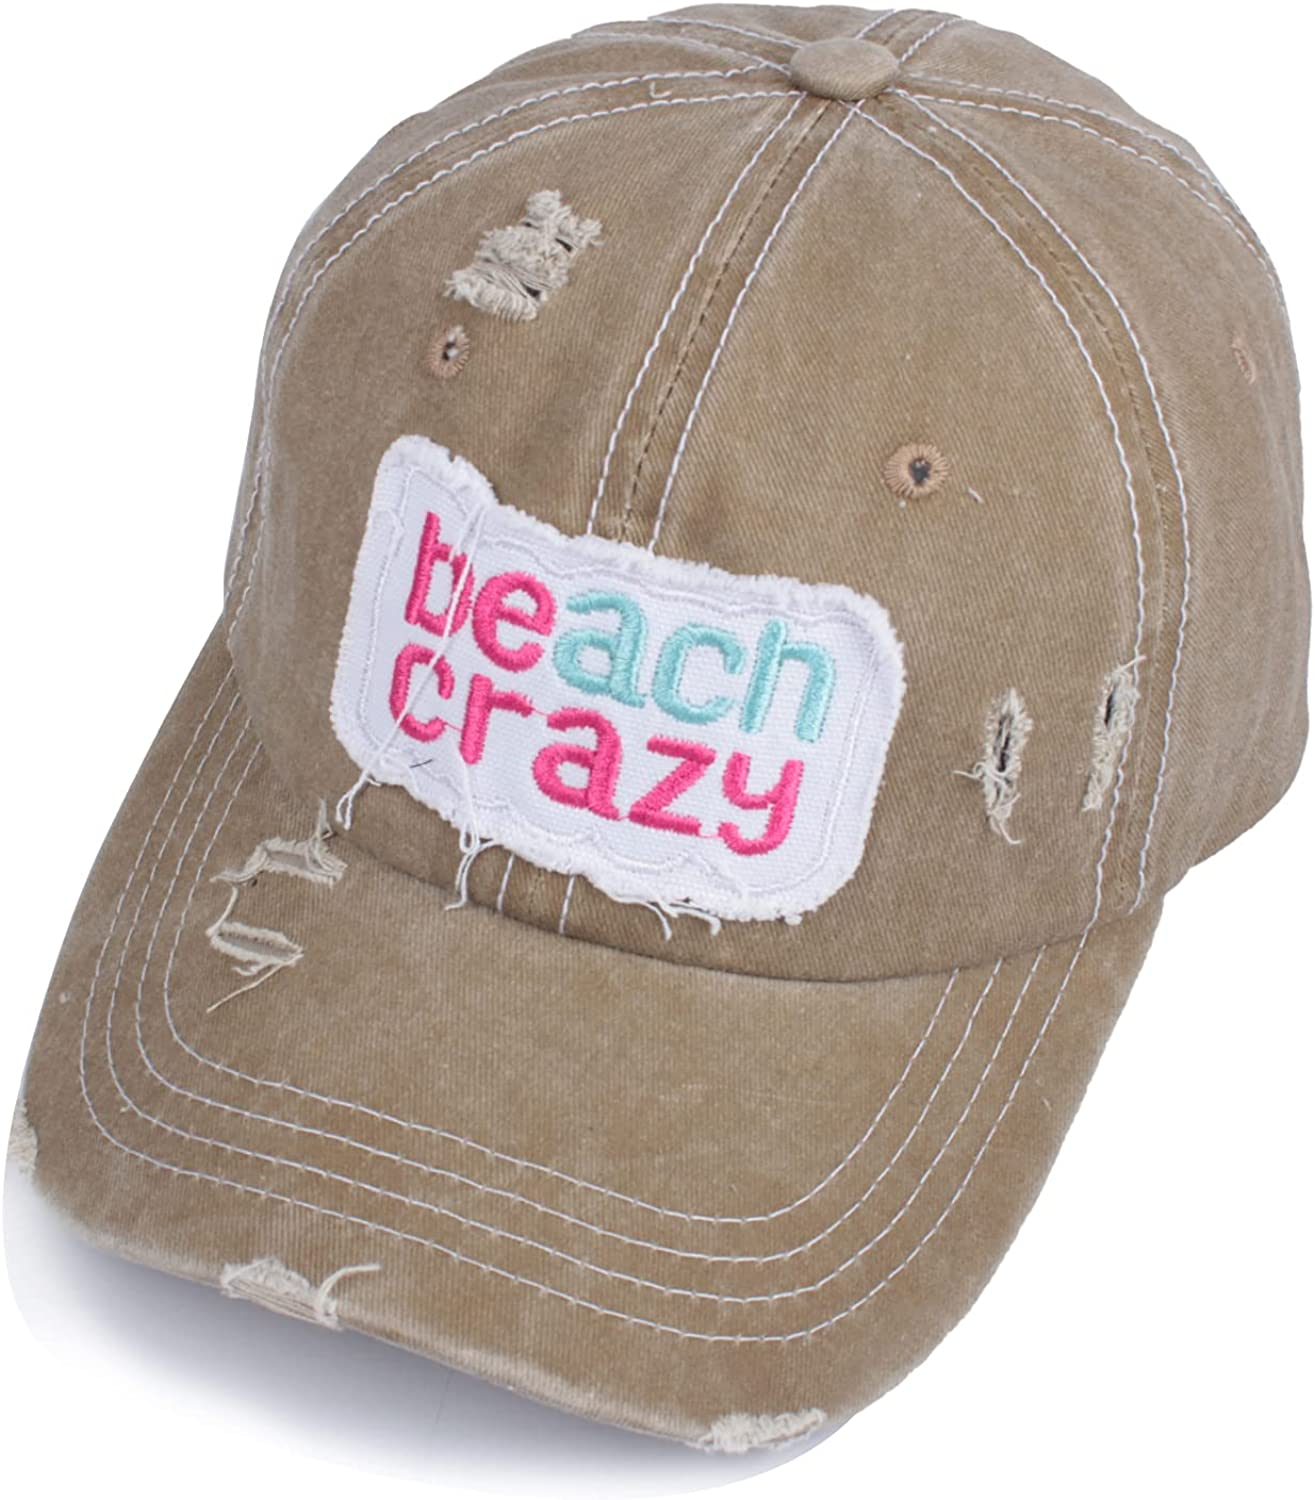 Crazy Era Womens Baseball Cap Distressed Vintage Ripped Dad Hats Unconstructed Embroidered Patch Hat